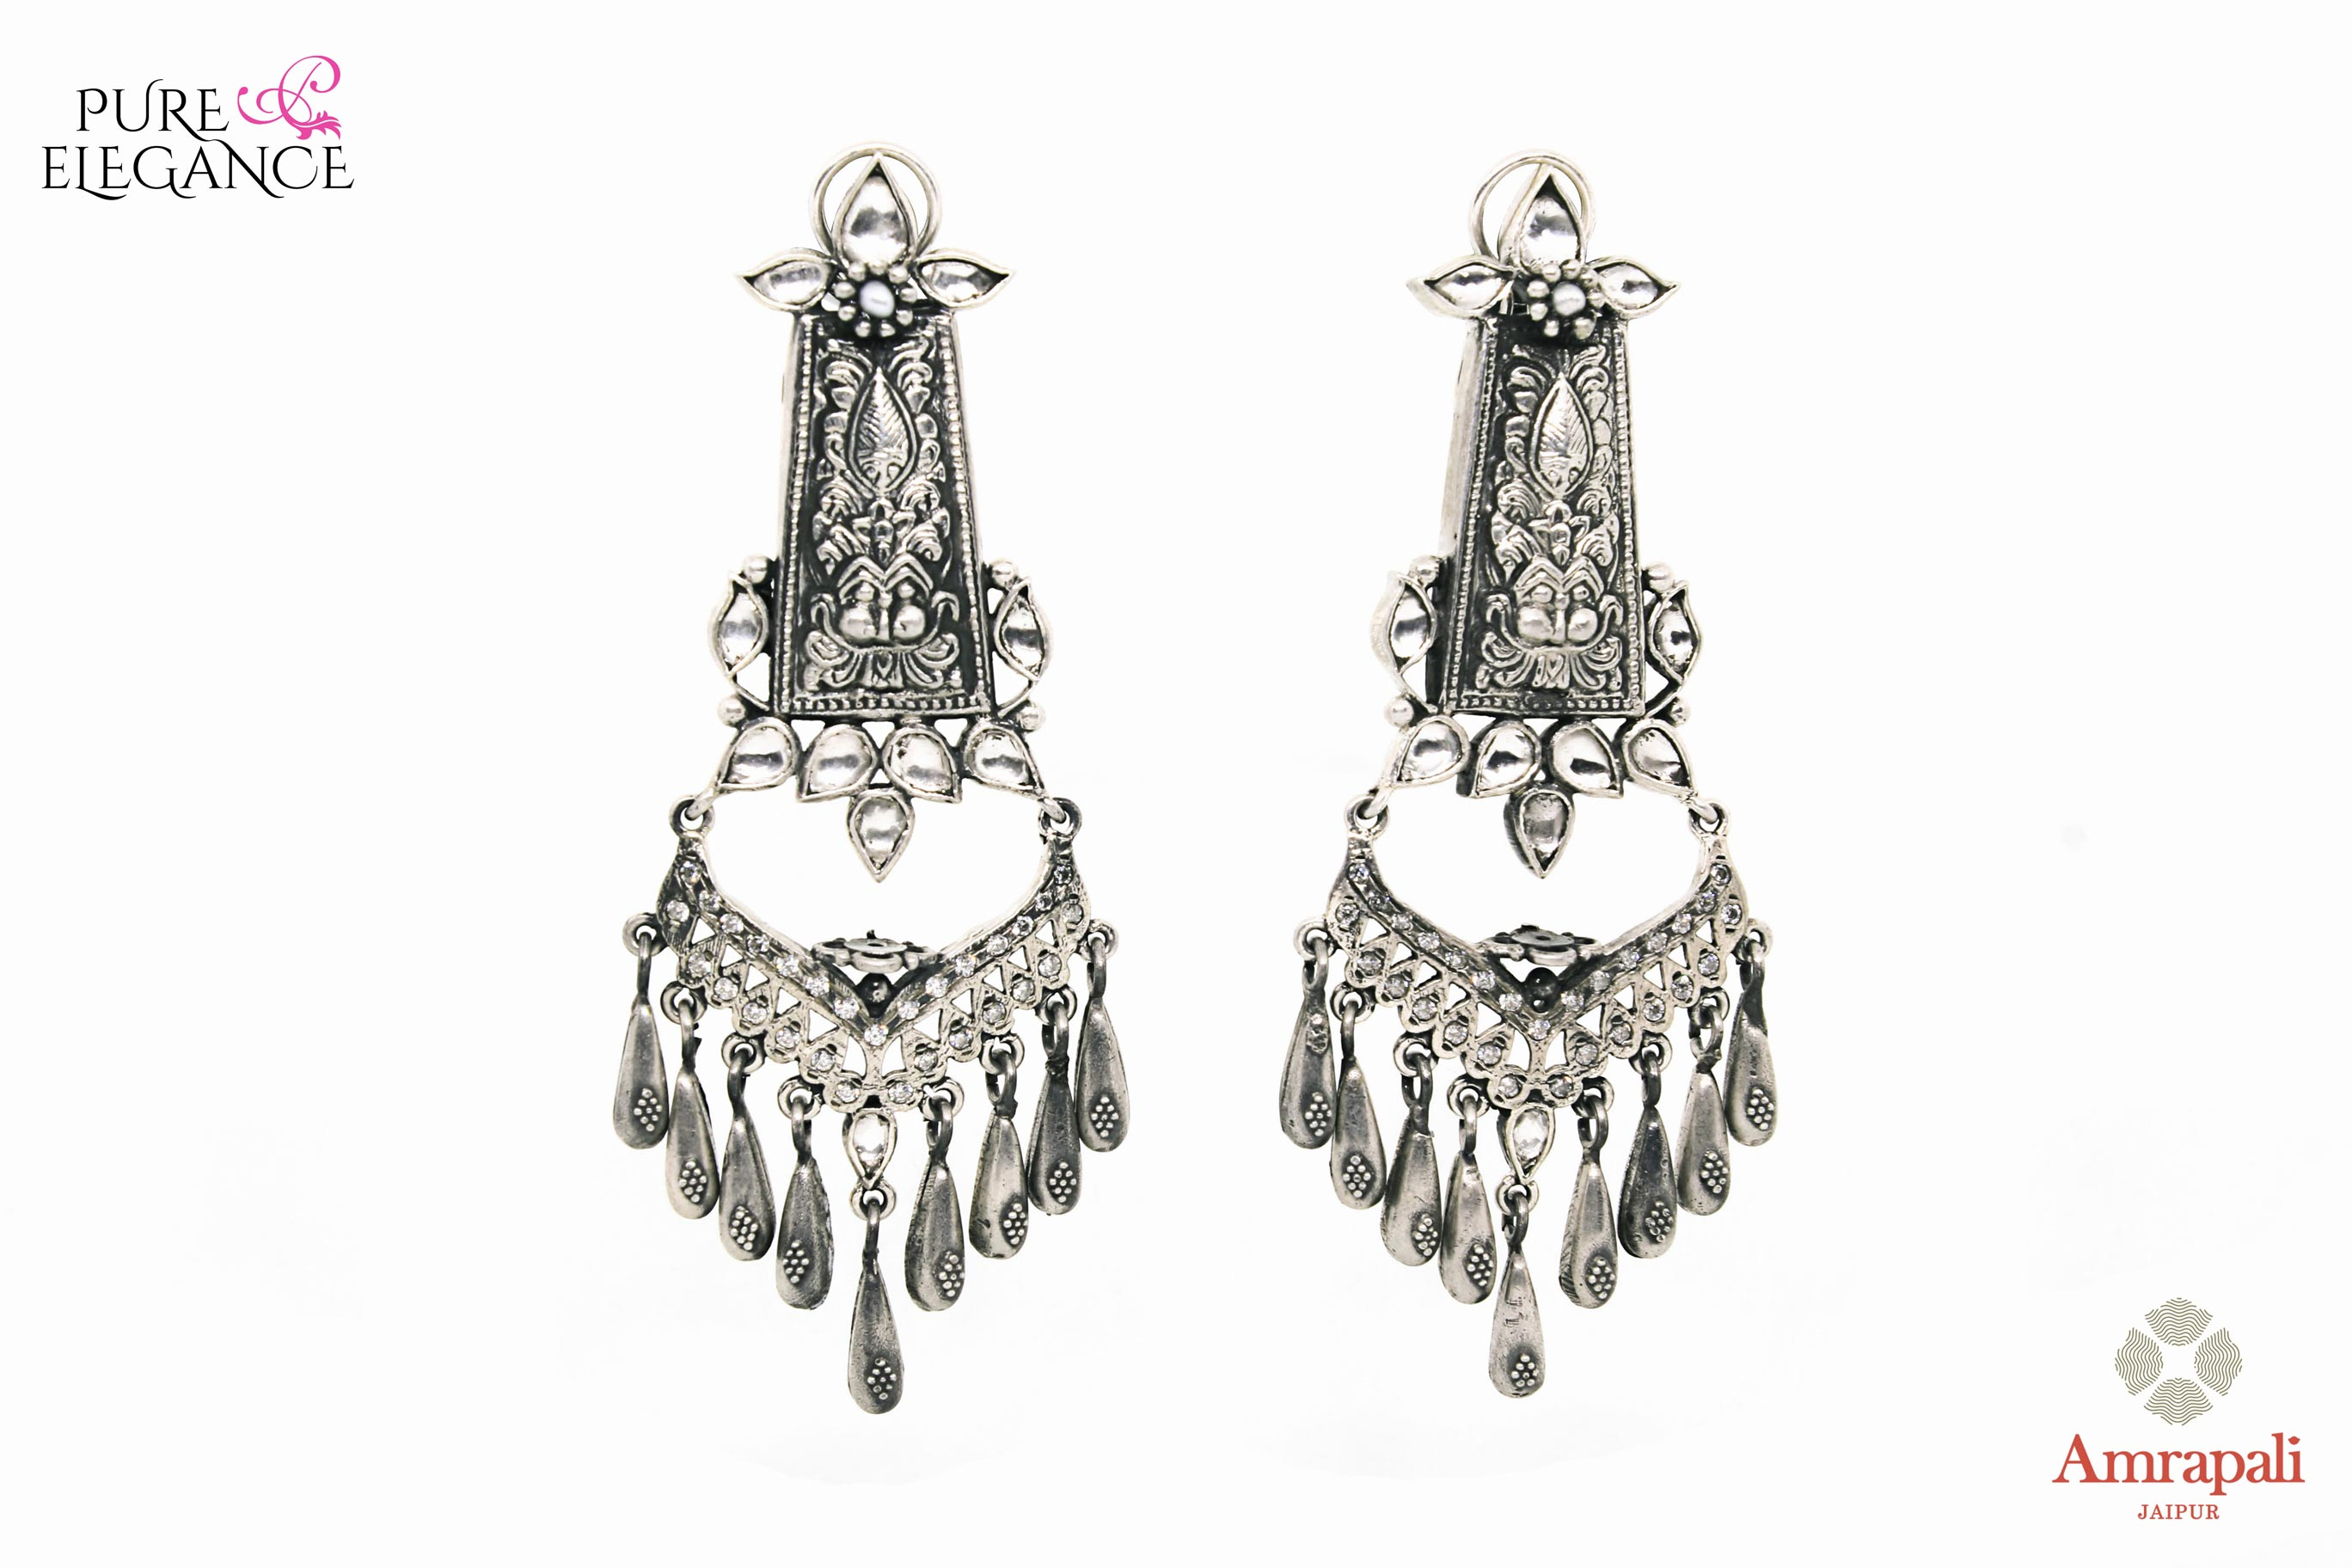 Buy Amrapali silver glass earrings online in USA. Find an exquisite collection of handcrafted Indian jewelry in USA at Pure Elegance Indian fashion store. Complete your festive look with beautiful silver gold plated necklaces, silver gold plated earrings, silver jewelry from our online store.-front